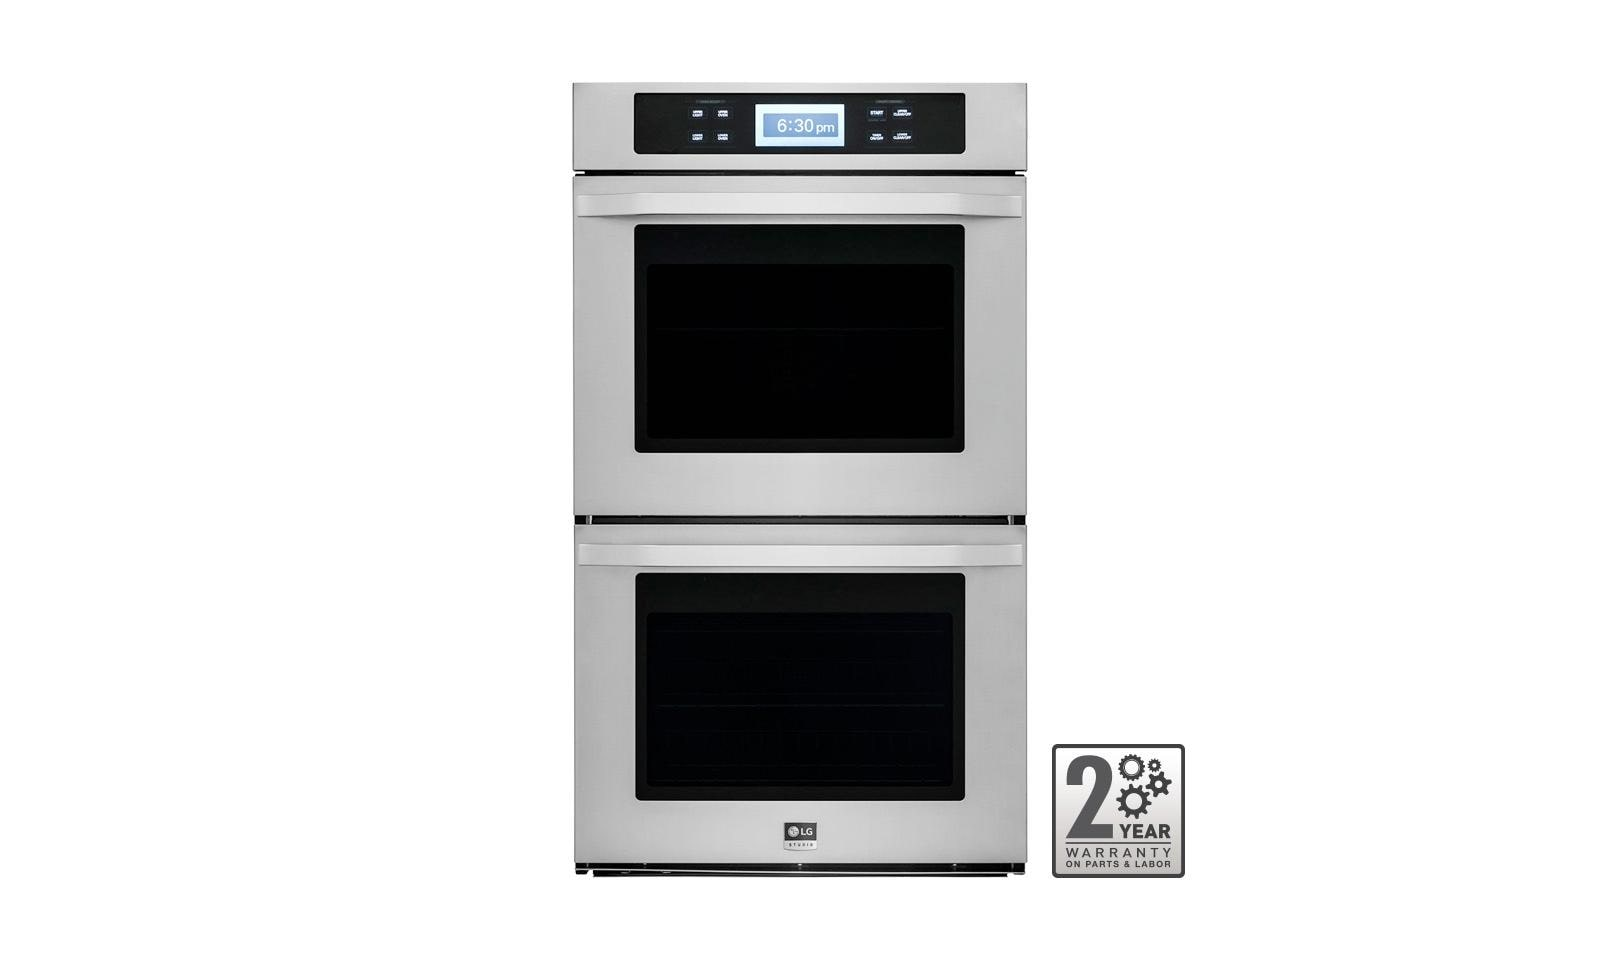 lg kitchen appliances brick outdoor lswd305st studio 30 inch built in double wall oven